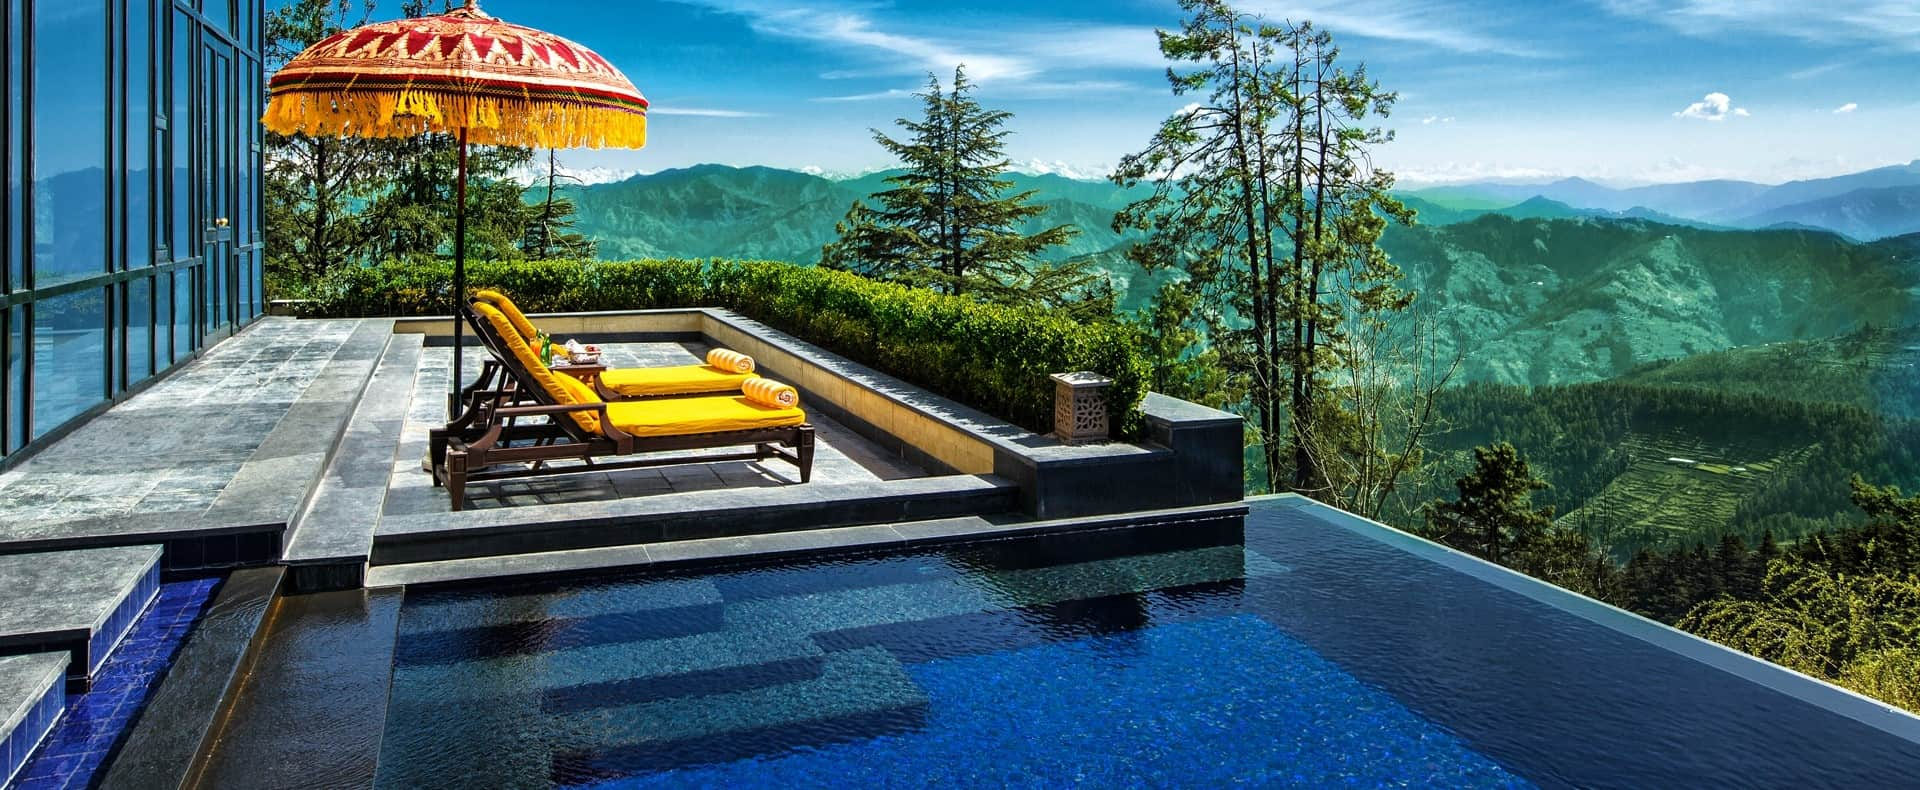 Oberoi Wildflower Hall, Shimla, India